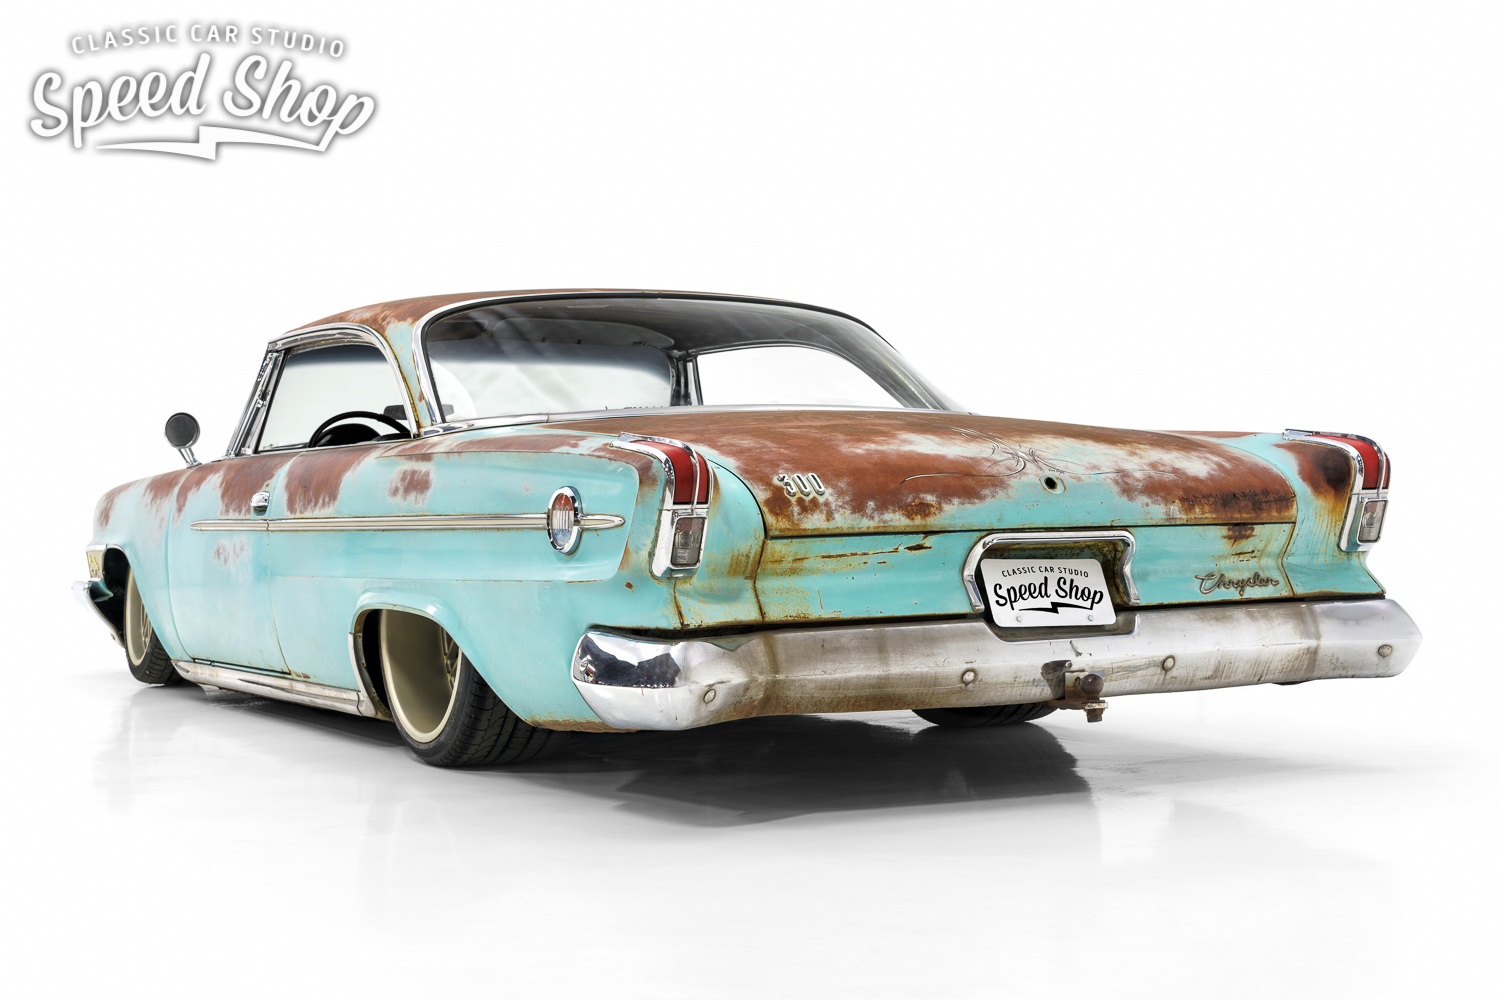 This 1962 Chrysler 300 Rat Rod Has A Viper V 10 Under Its Rusty Hood Custom Hot Wiring Harness Classic Car Studio